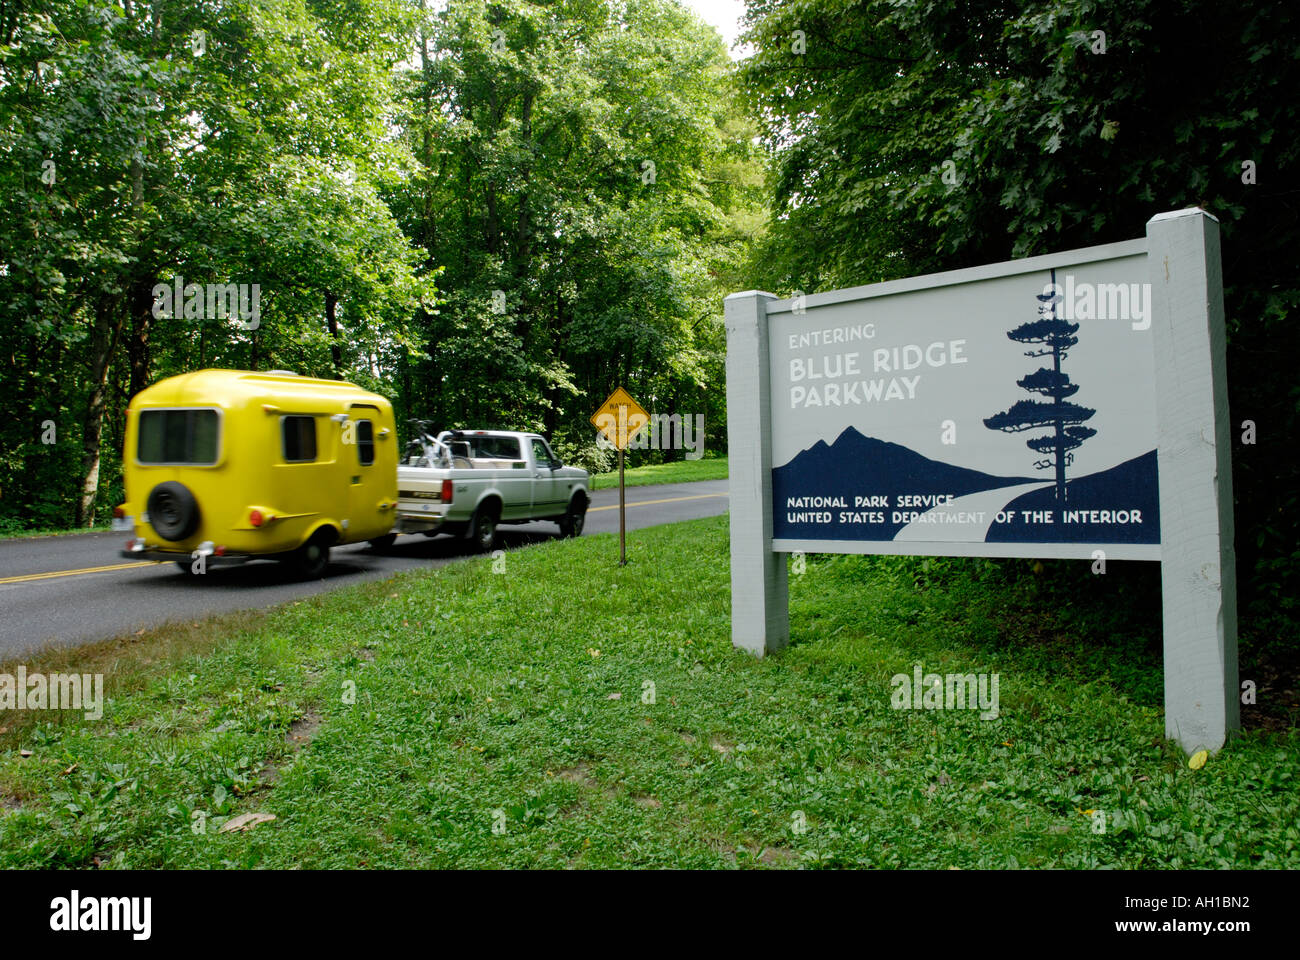 Family with camper trailer entering Blue Ridge Parkway, North Carolina - Stock Image